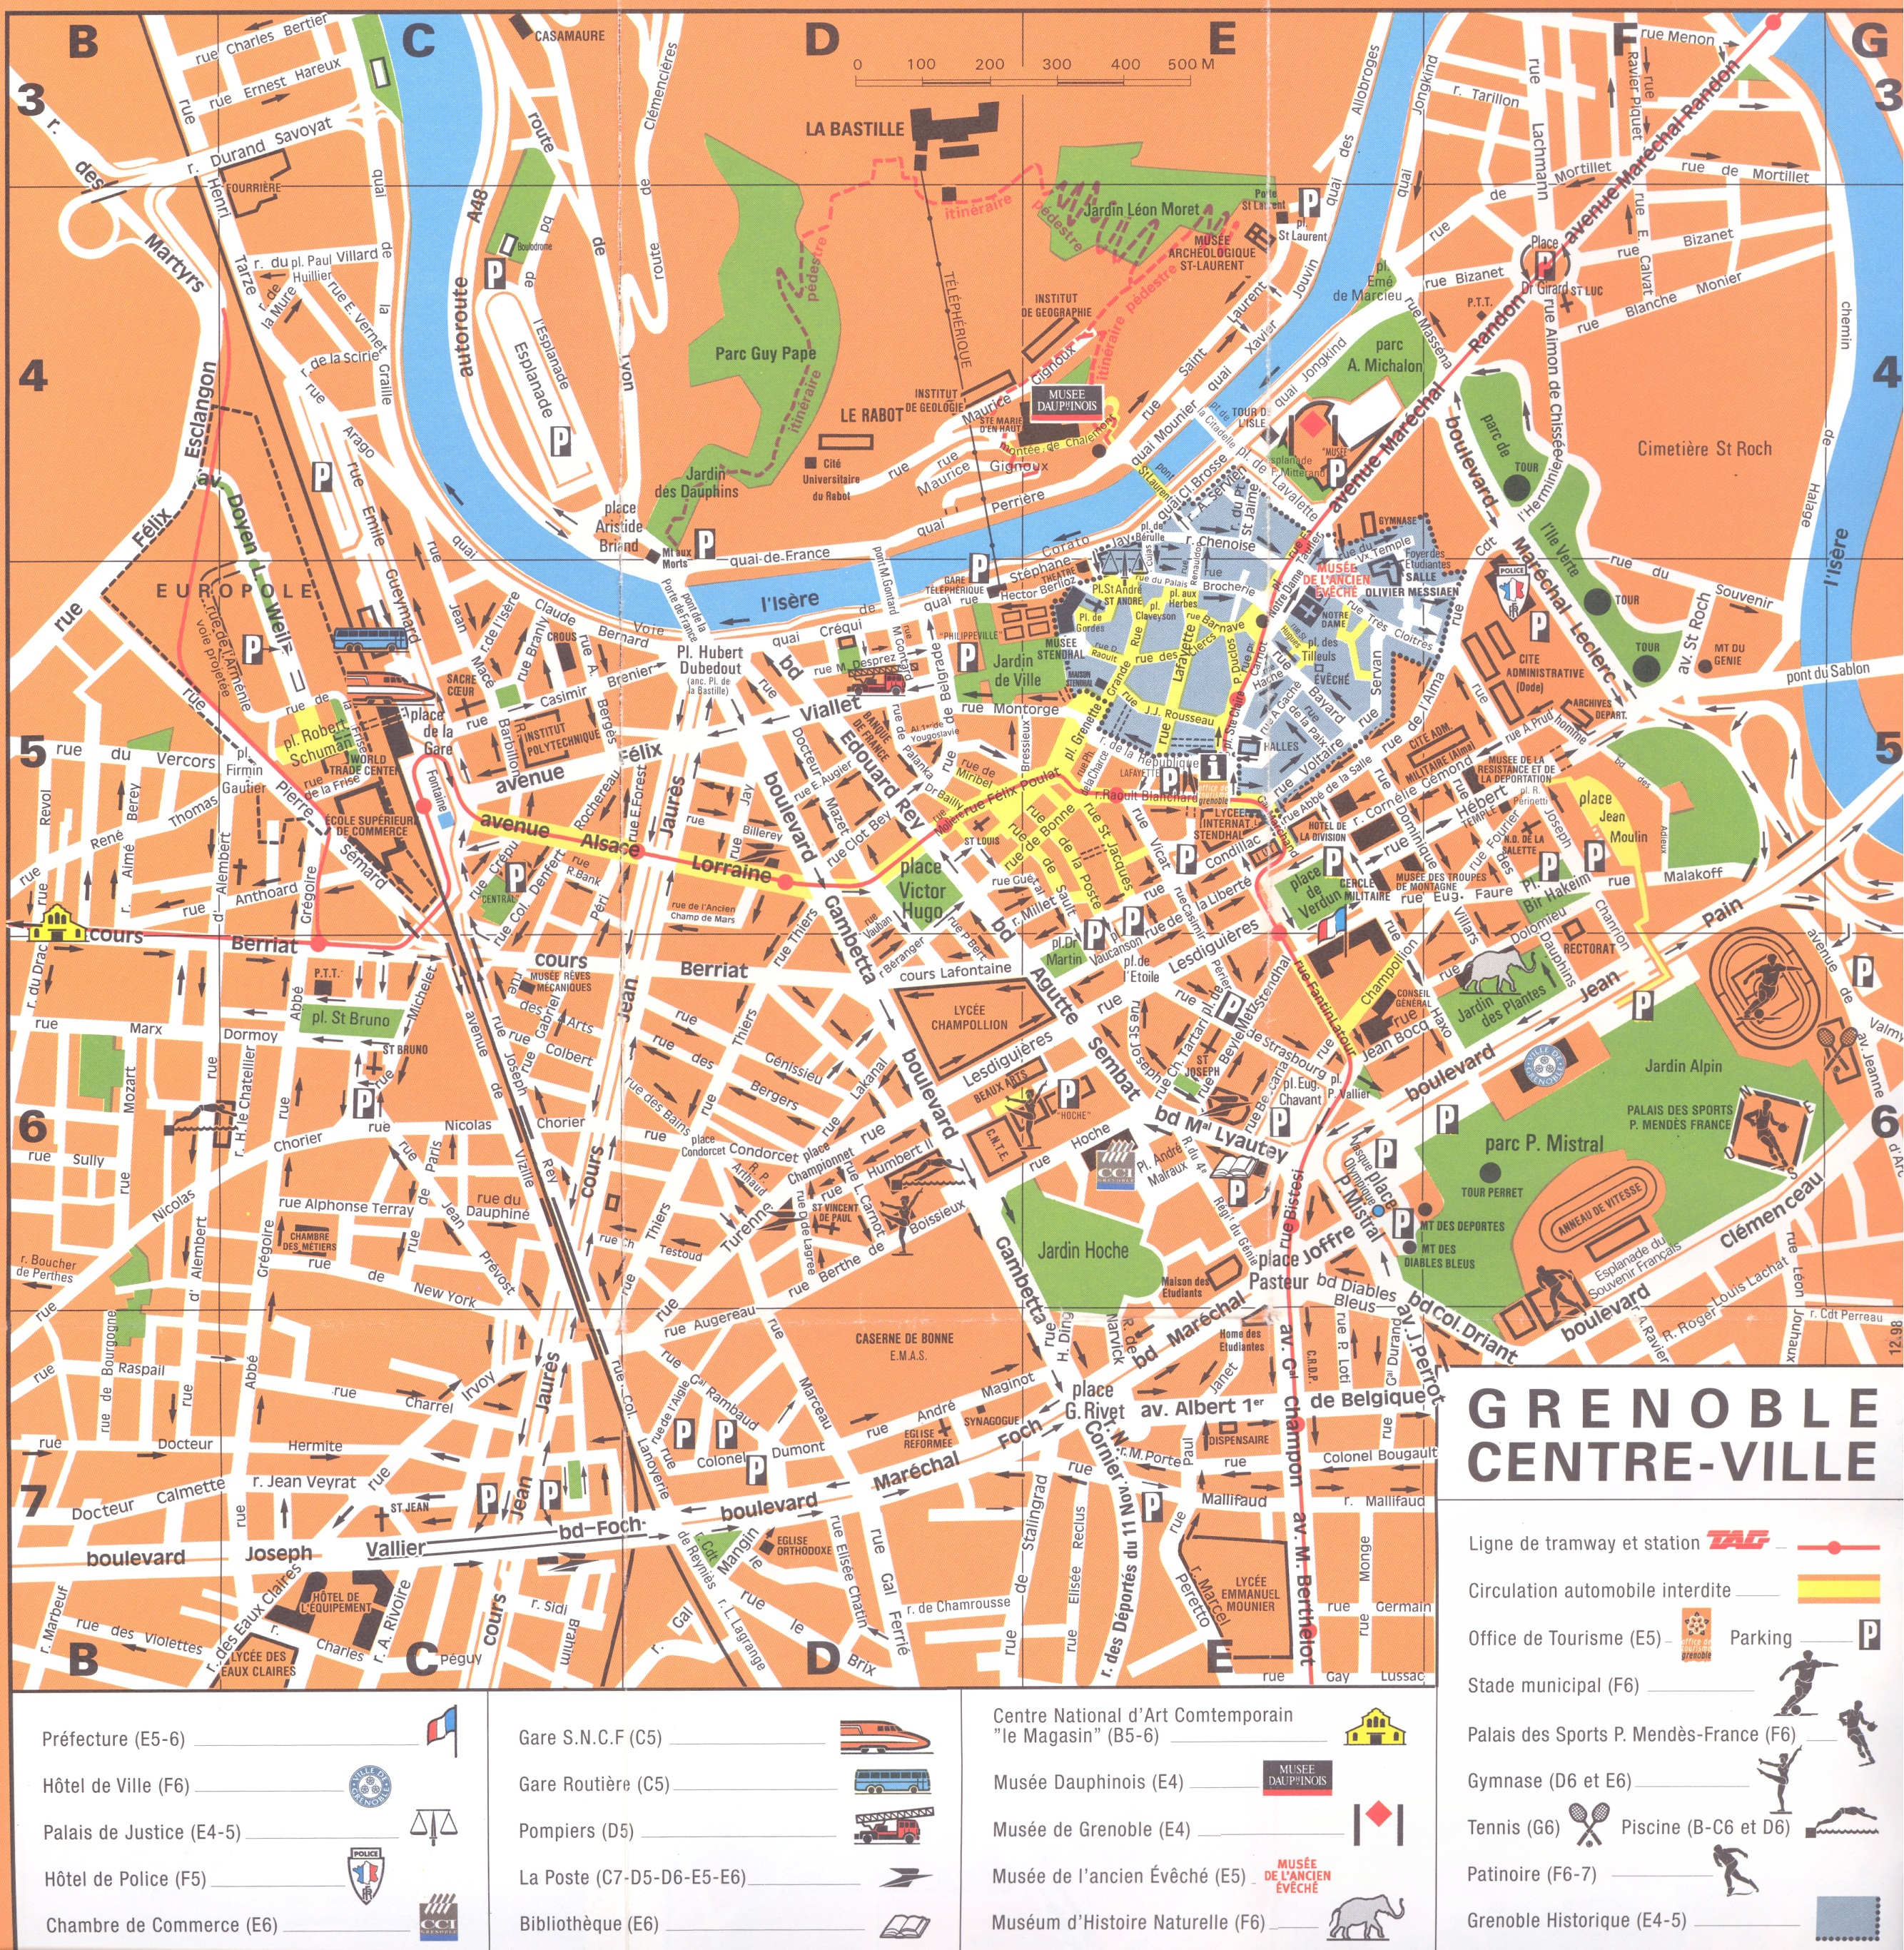 Grenoble centre-ville Map - Grenoble France • mappery